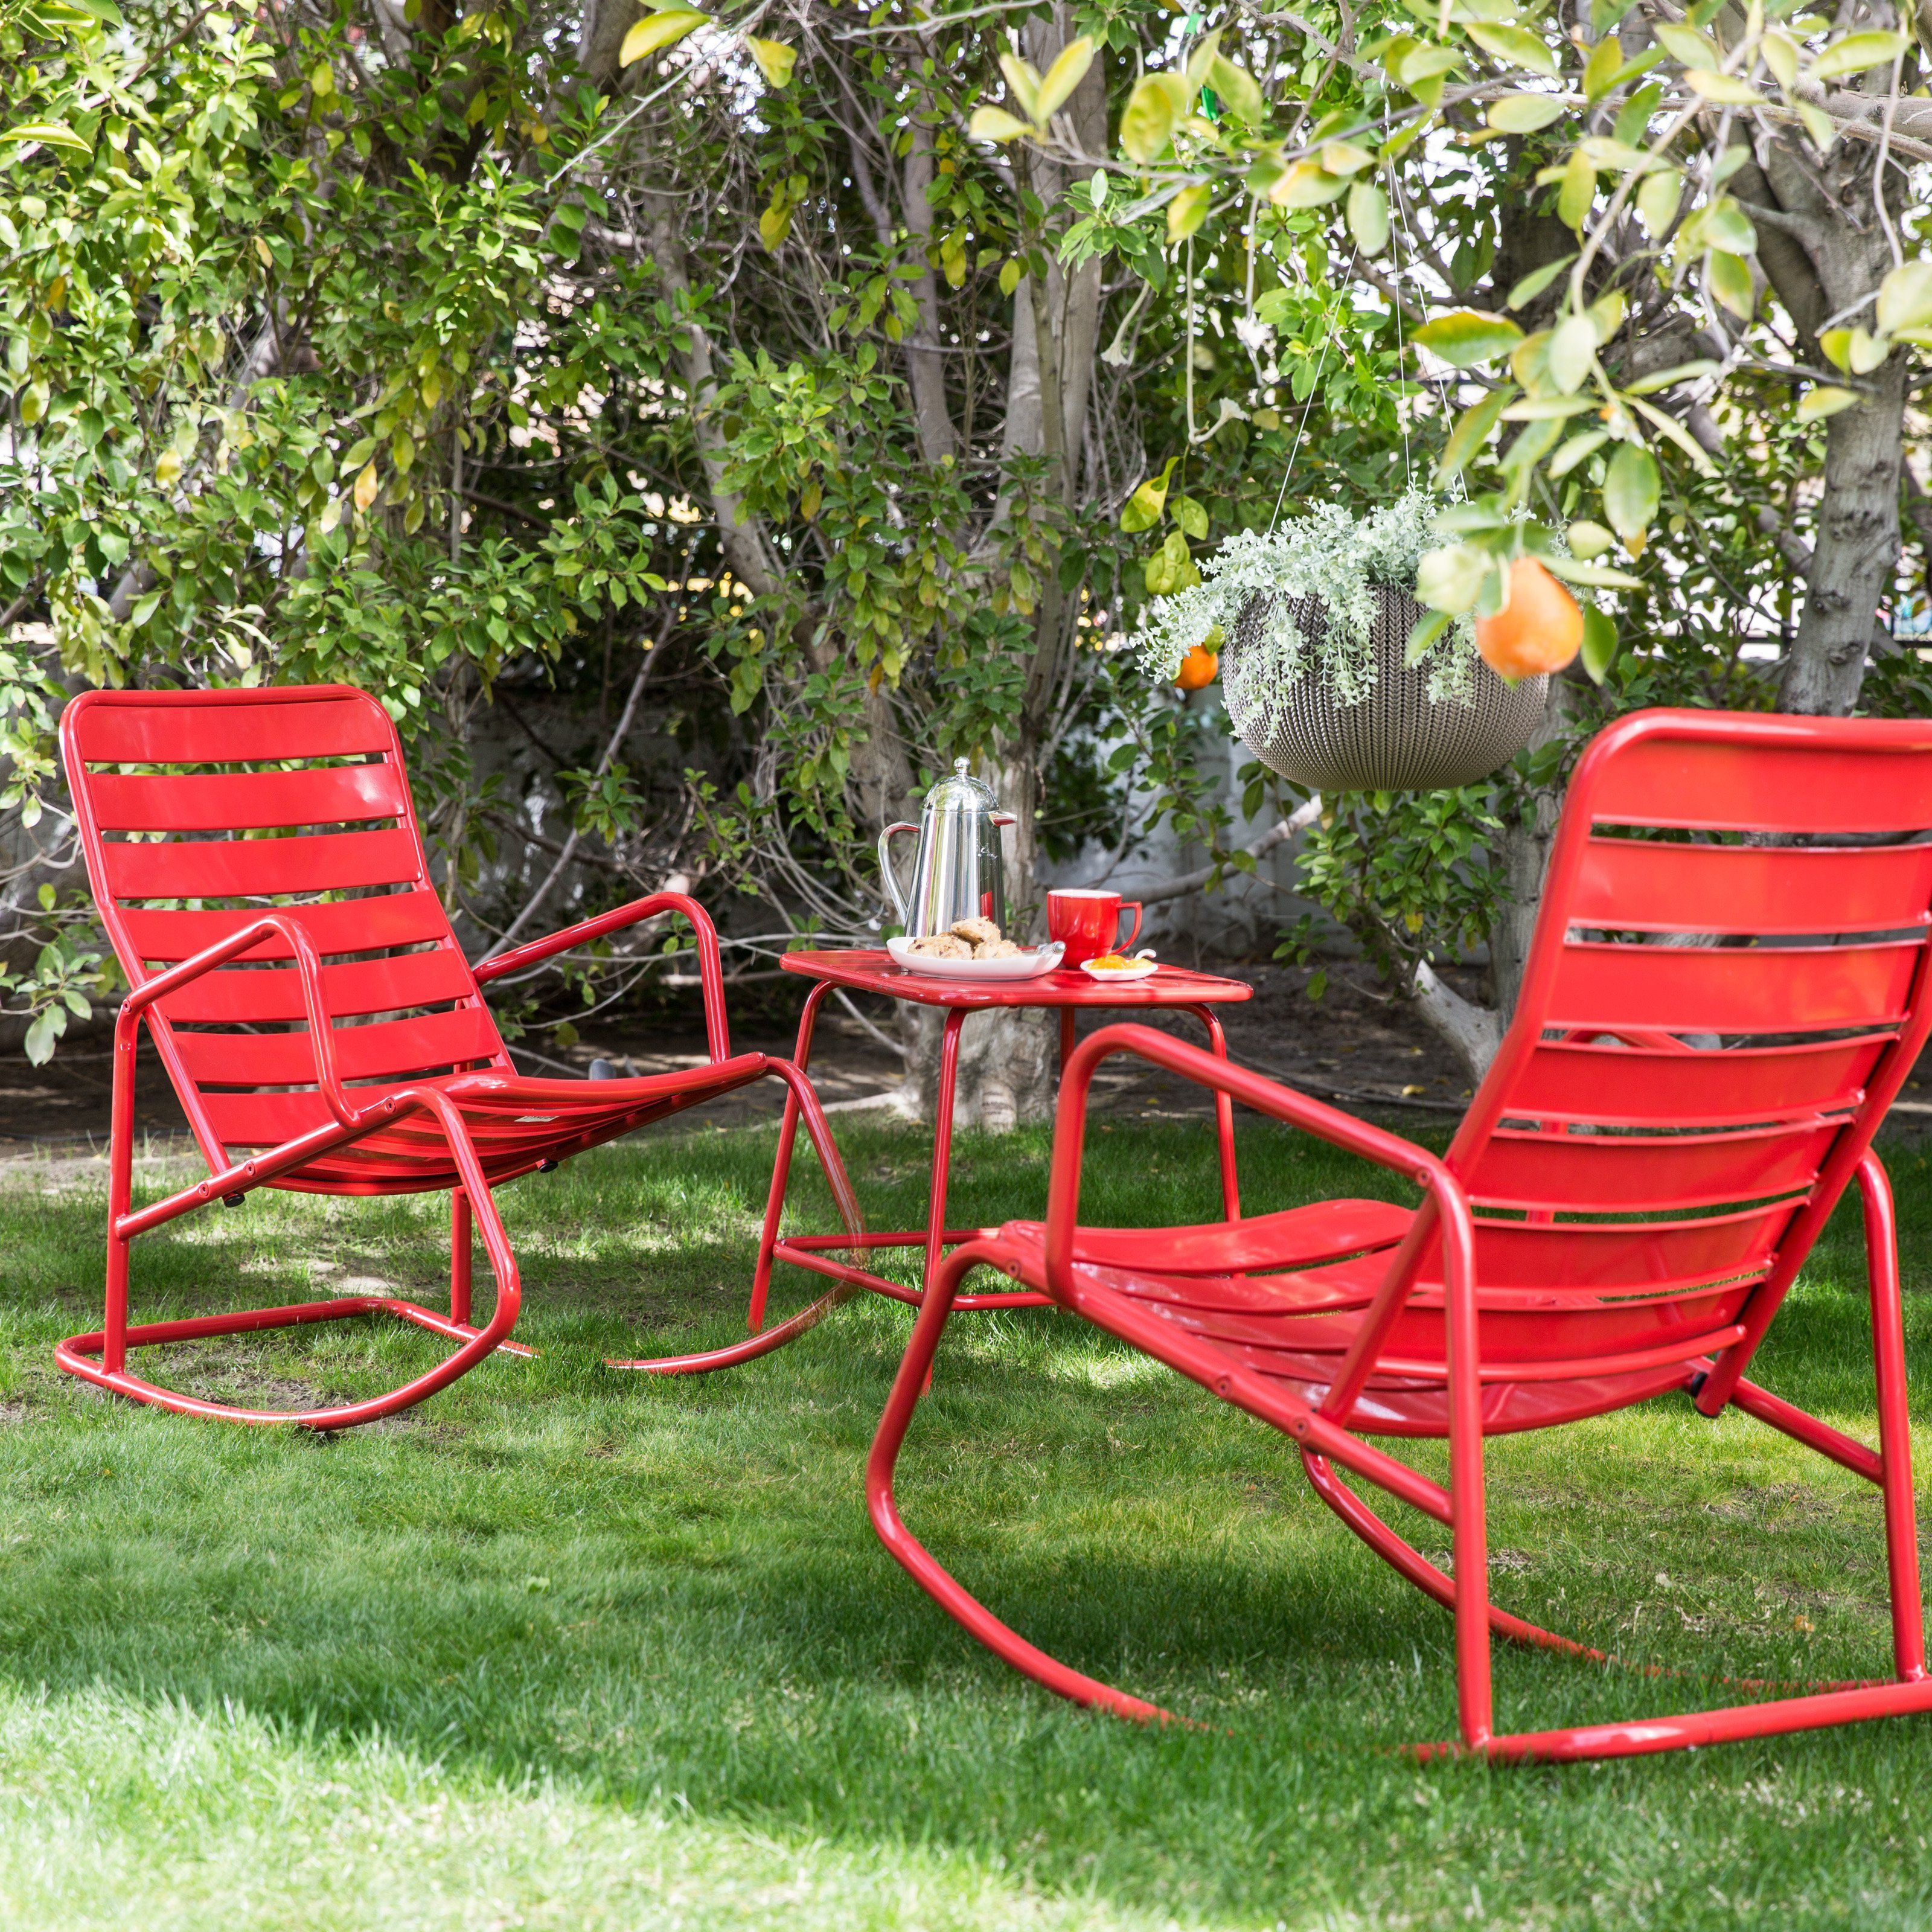 Belham Living Adley Outdoor Metal Rocking Chair Set With Side Table | From  Hayneedle.com